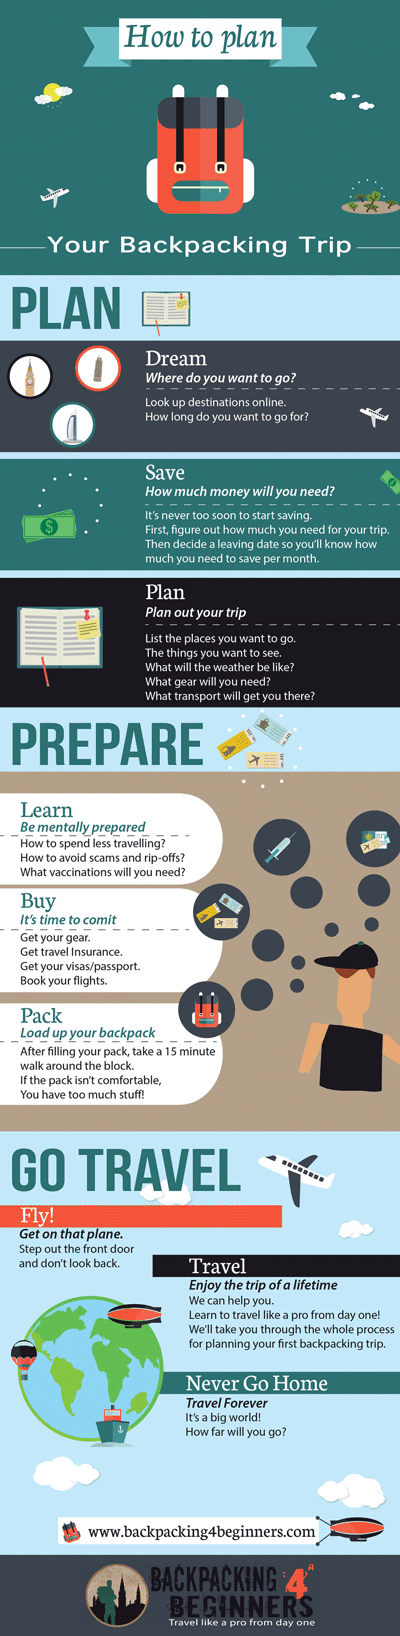 Backpacking For Beginners: How to plan a backpacking trip infographic